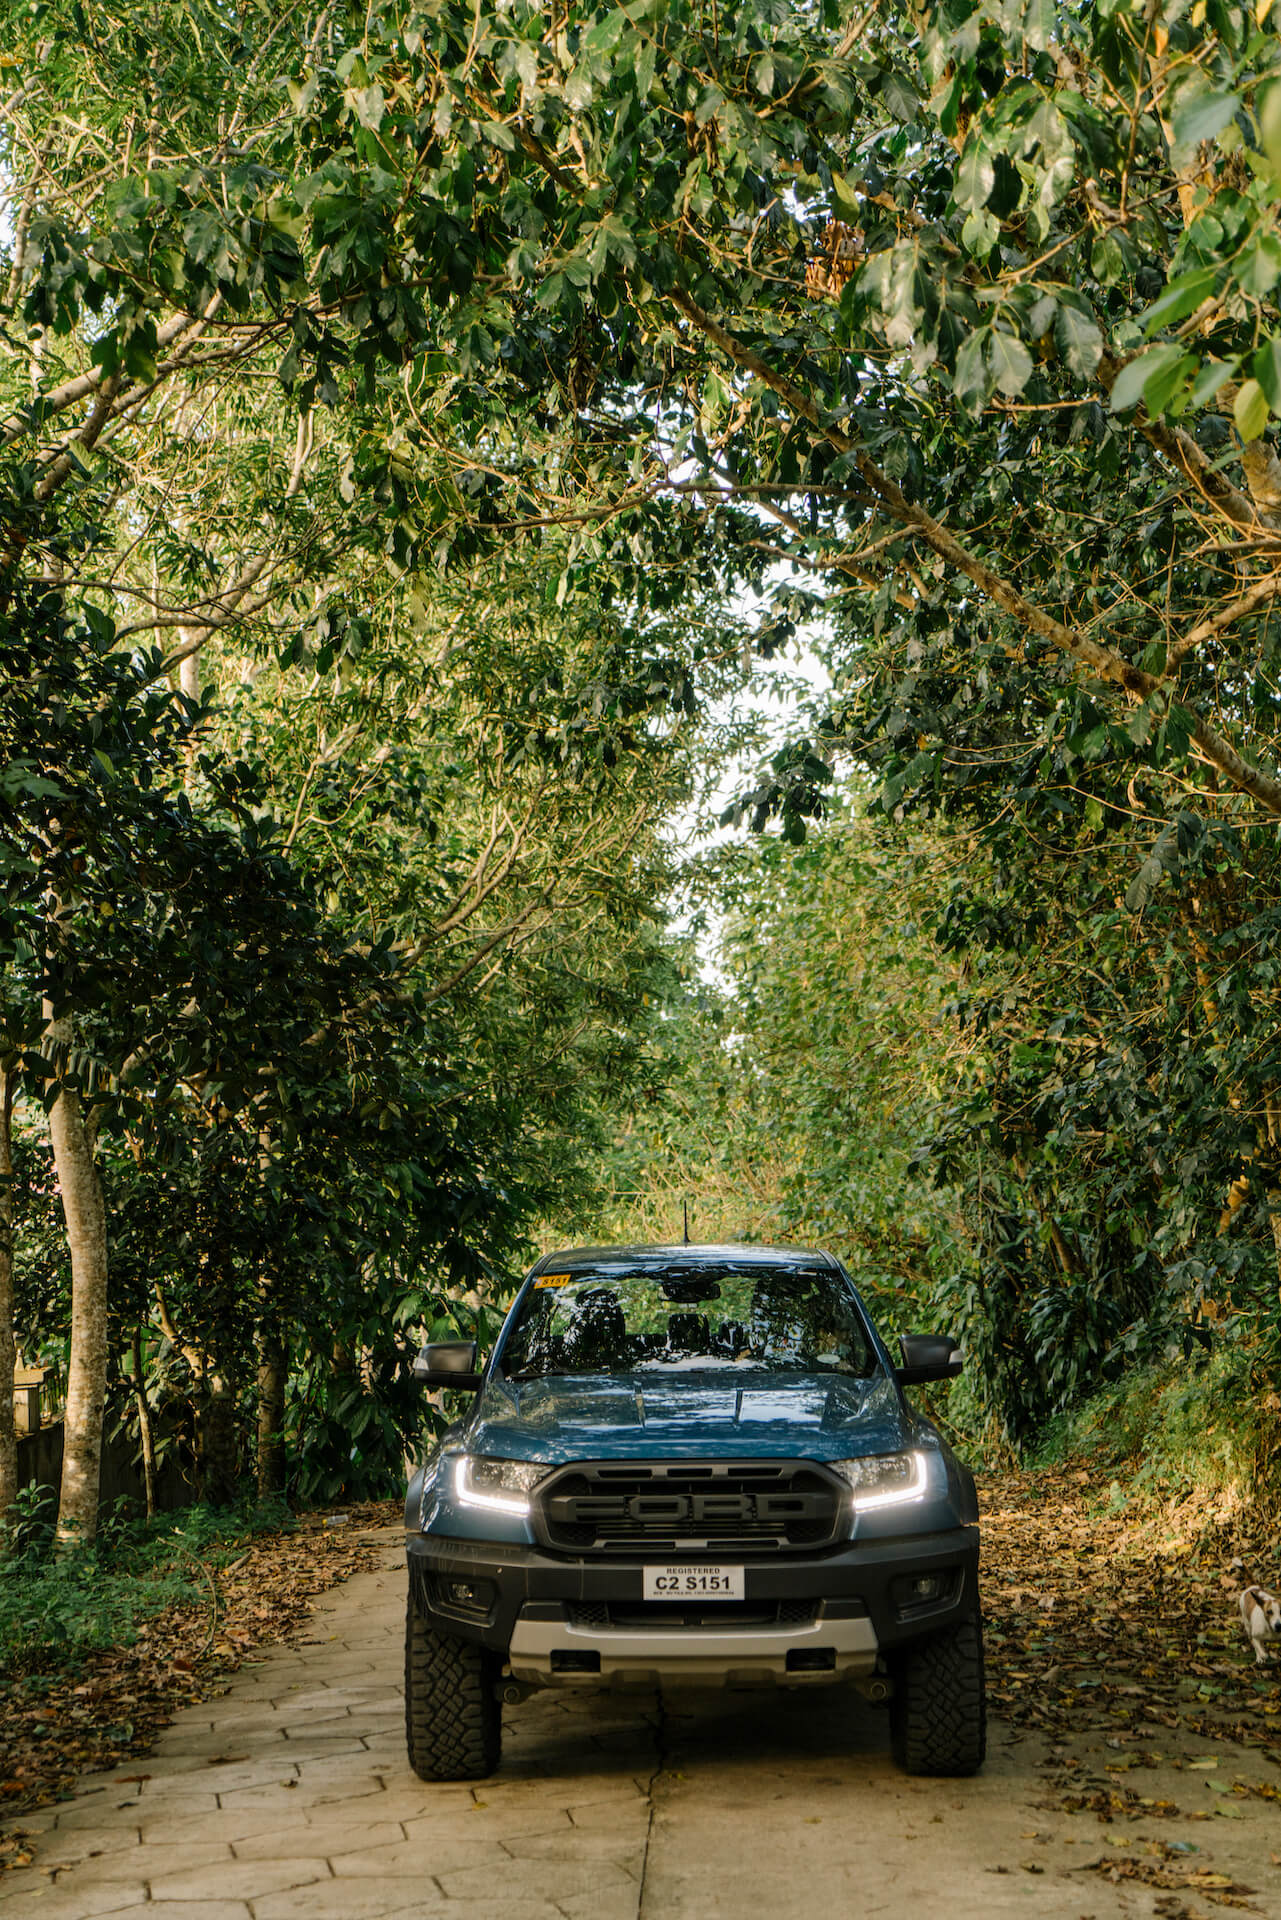 The Ford Raptor parked on a cement path lined with trees